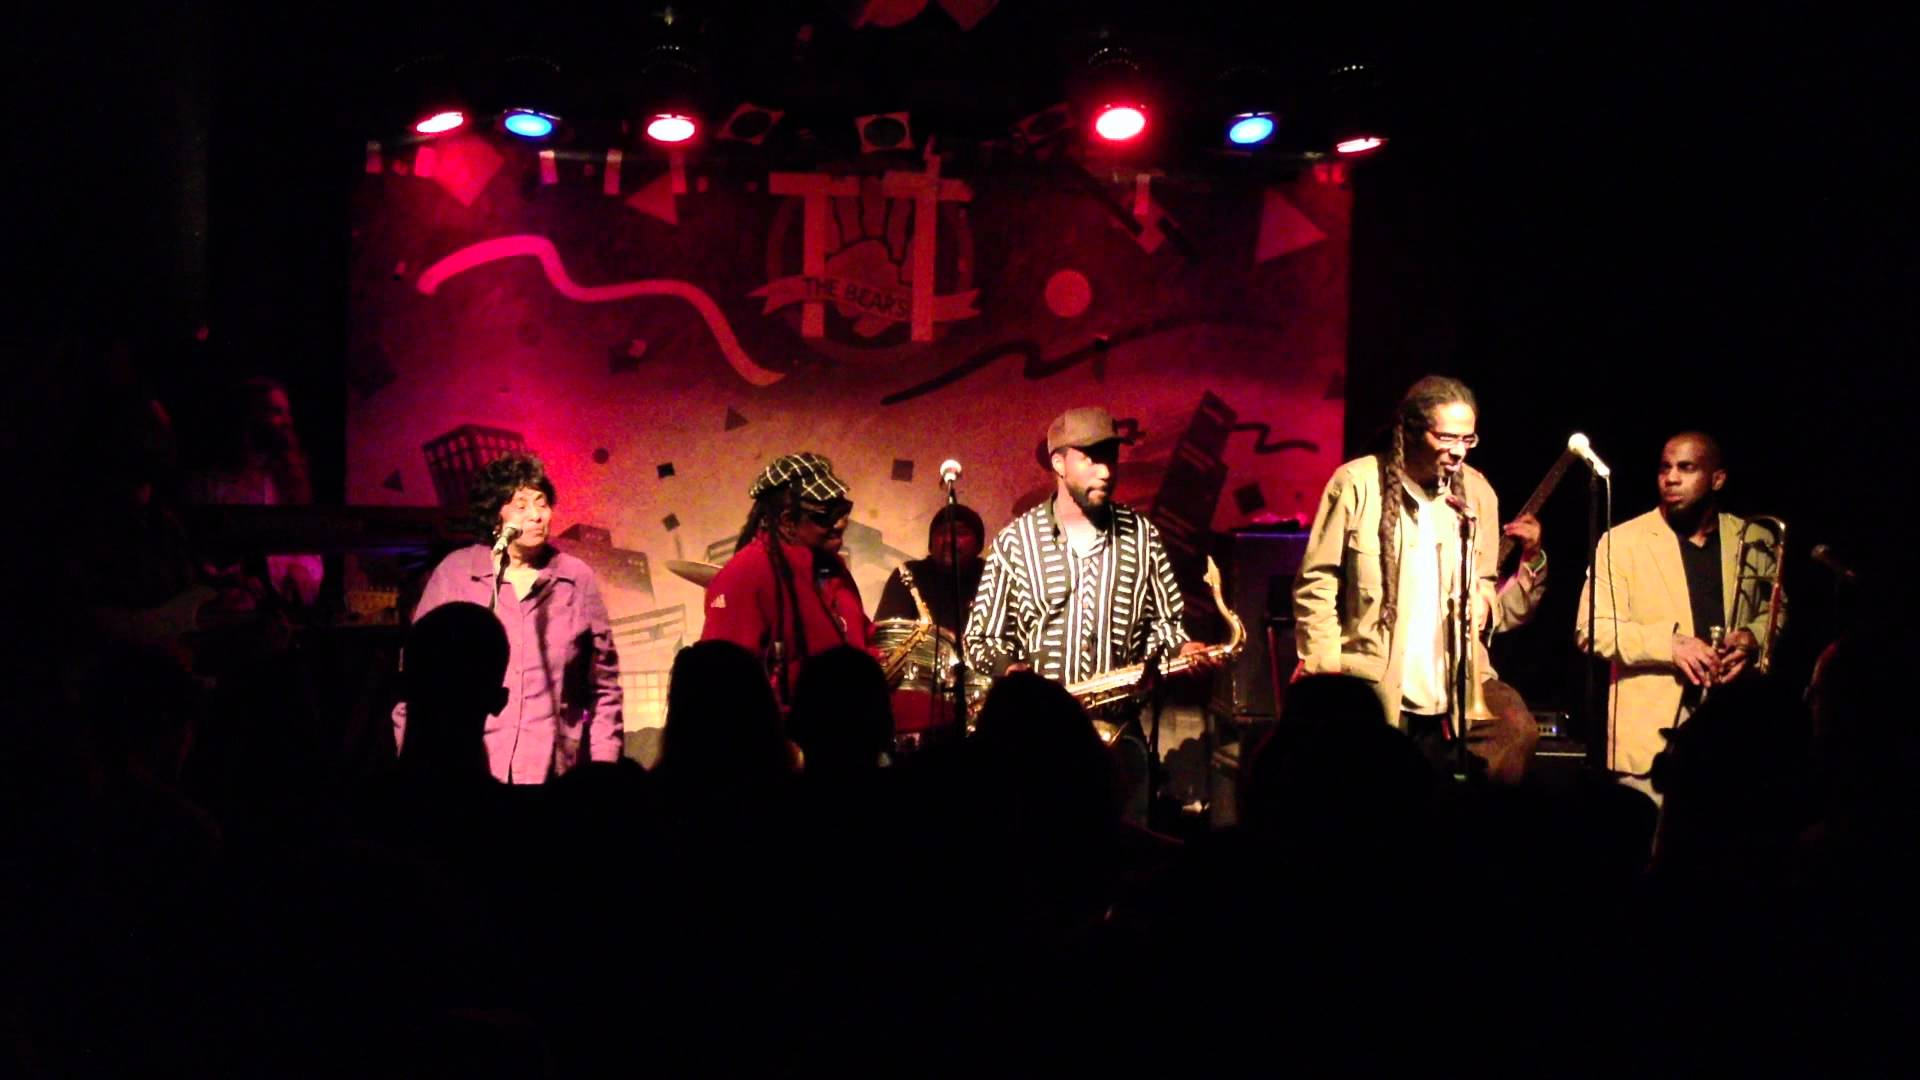 skatalites at tt the bears